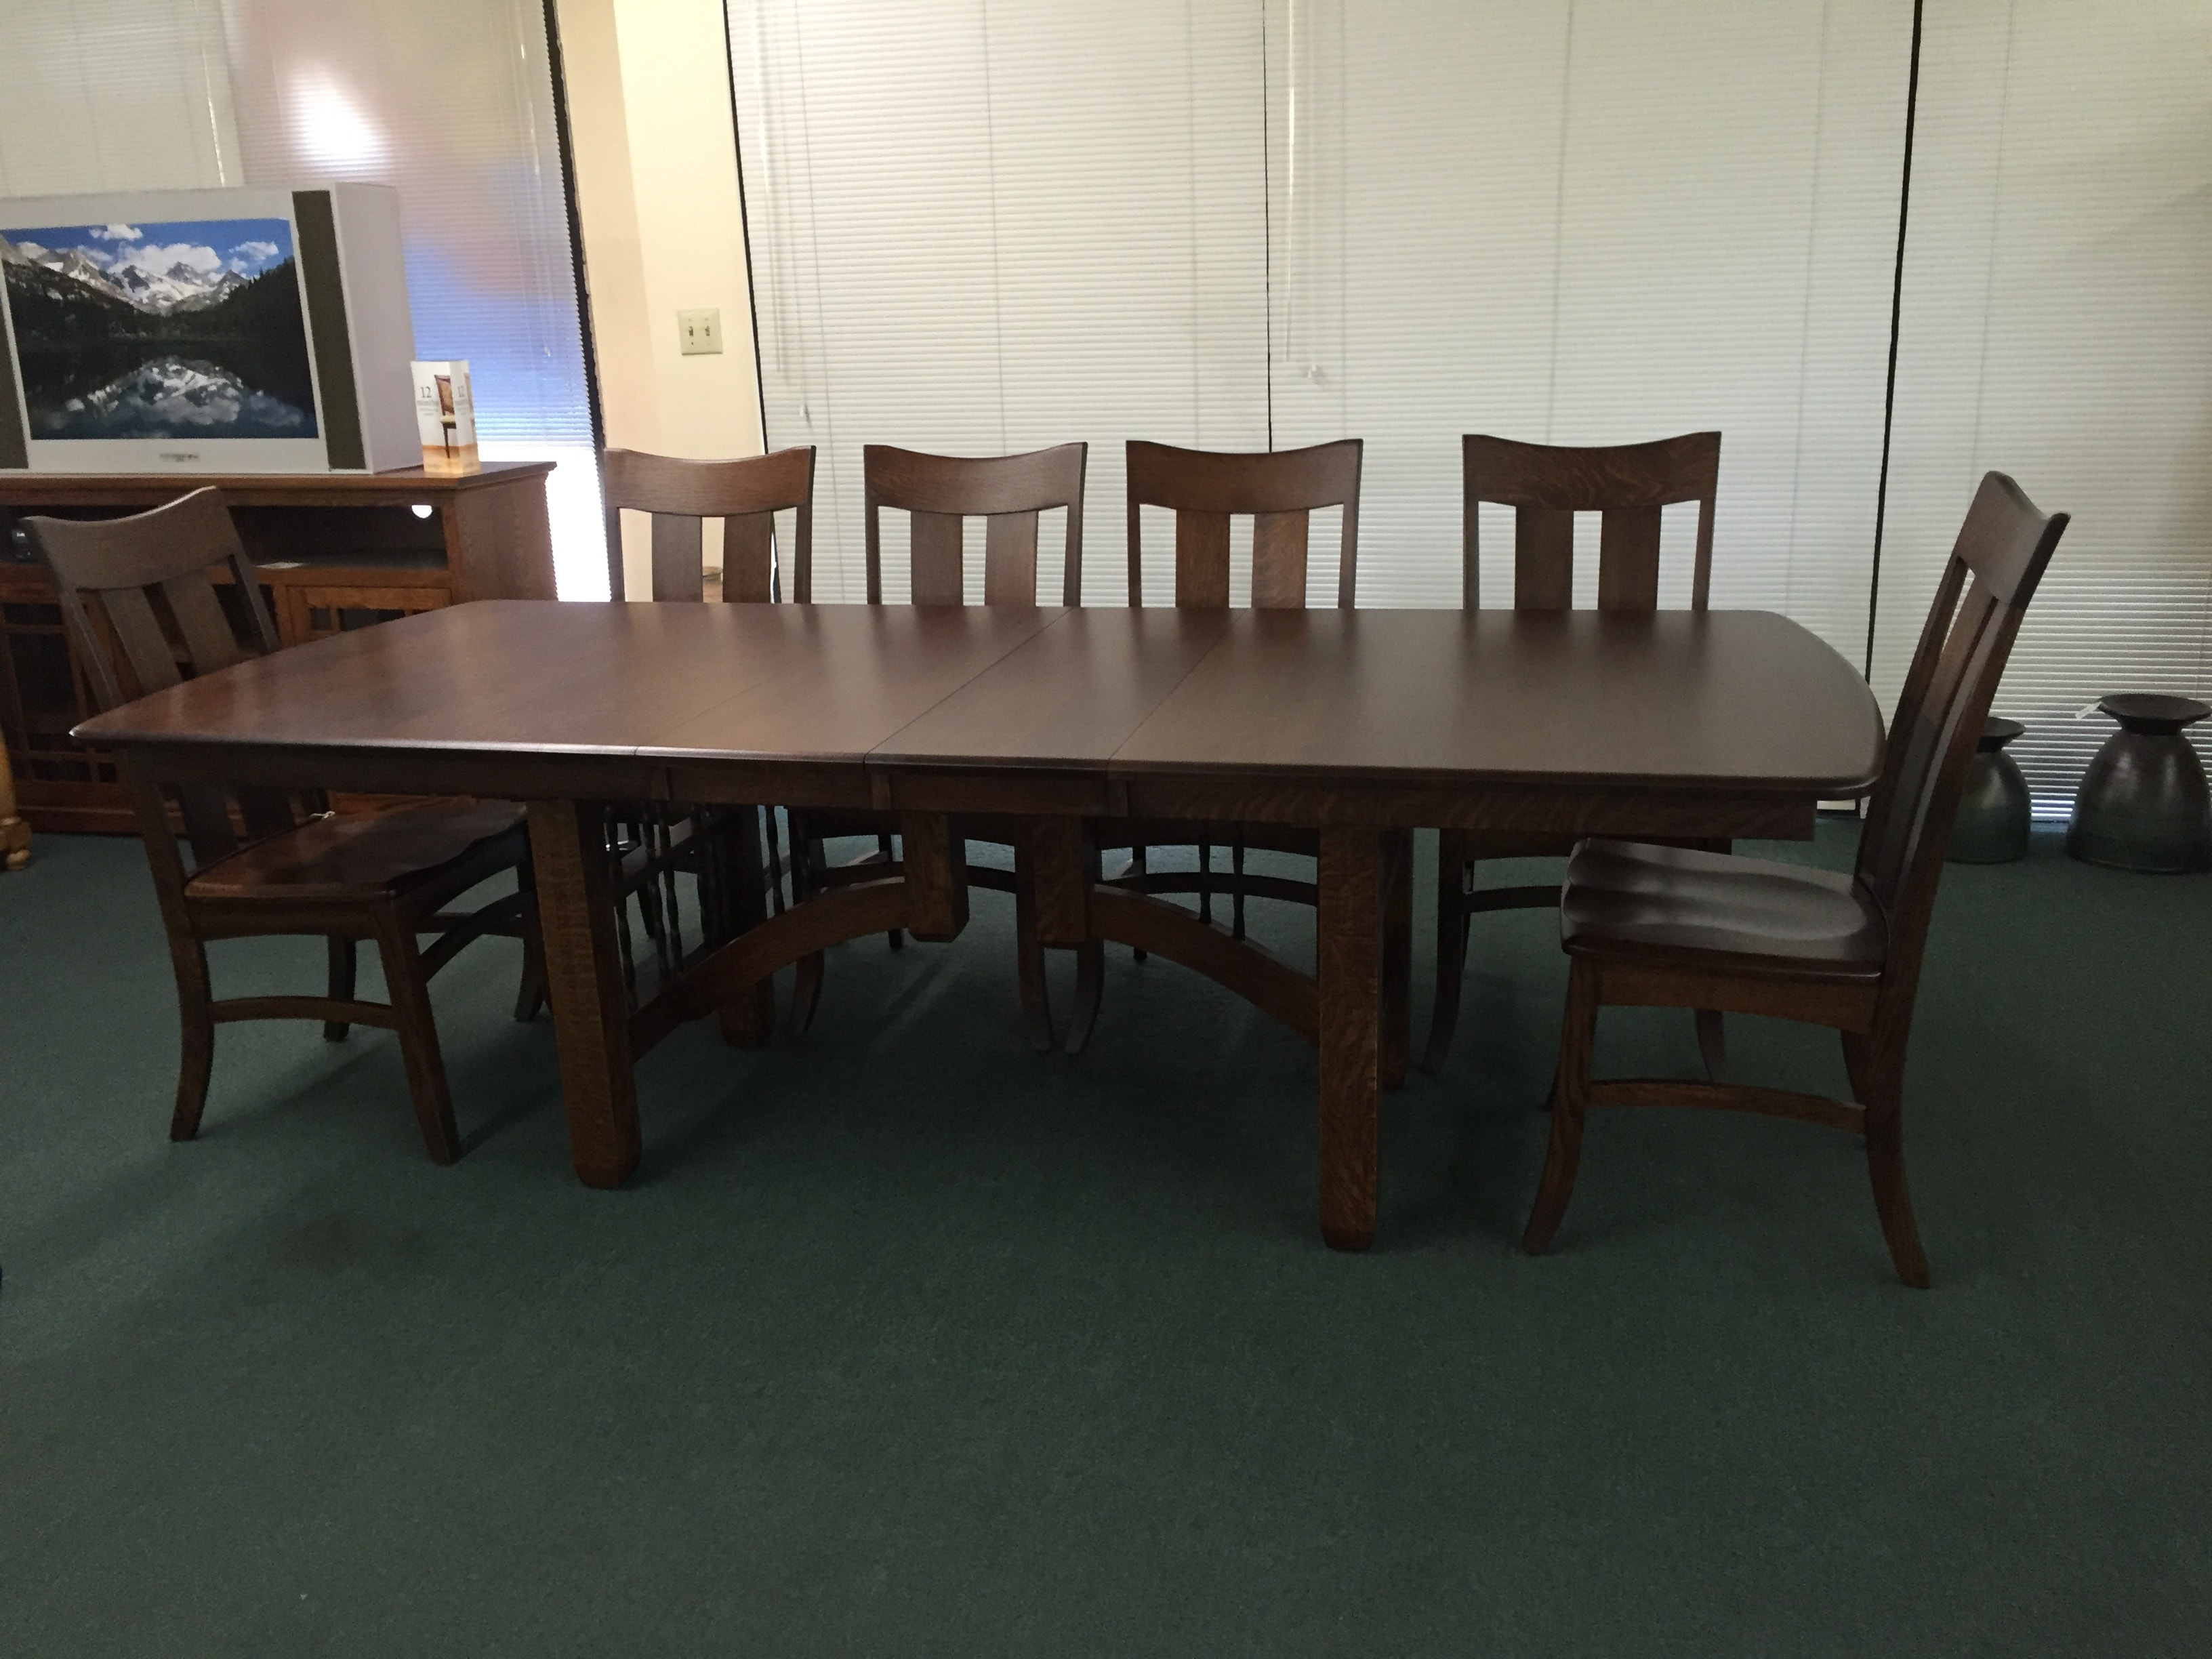 We Offer Fresno U0026 Clovis Resodents An Almost Unlimited Selection Of Solid  Wood, American Made Dining Tables In Your Choice Of Hardwoods, Including:  Oak, ...